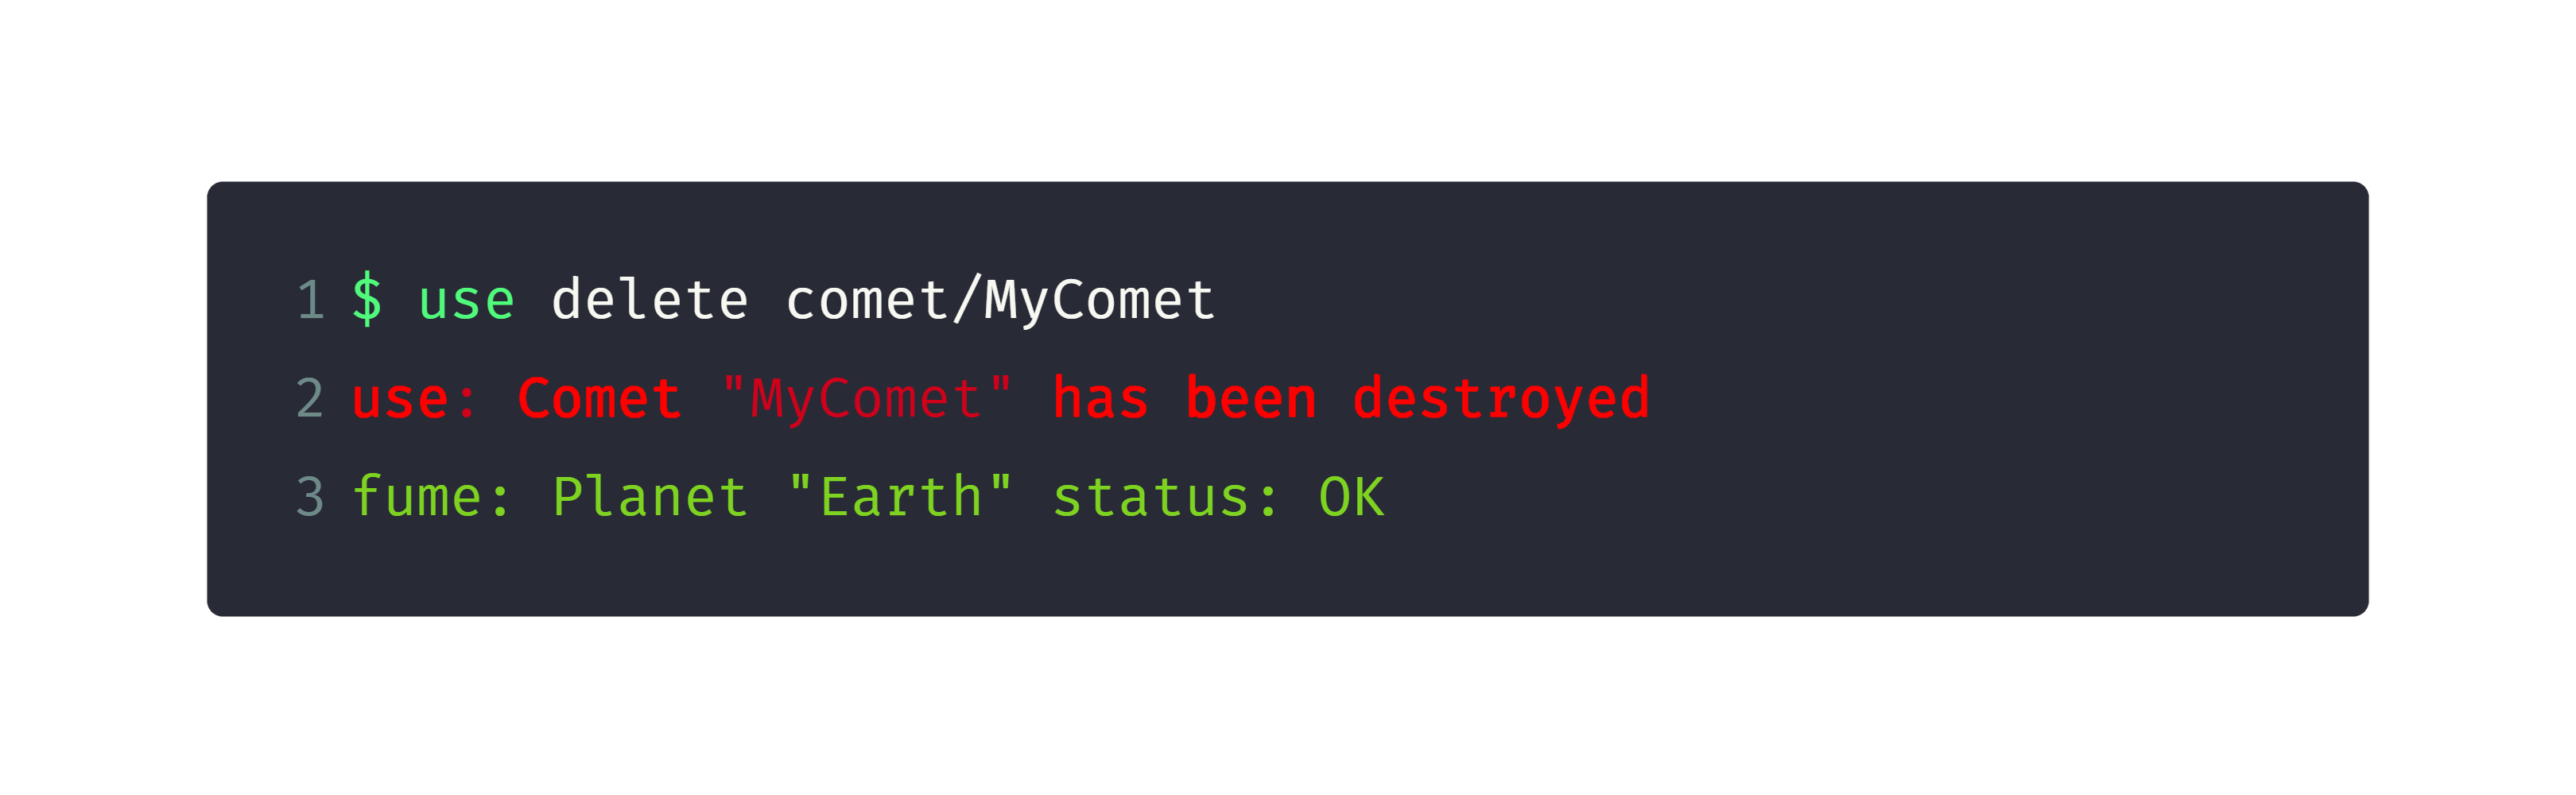 delete comet manually